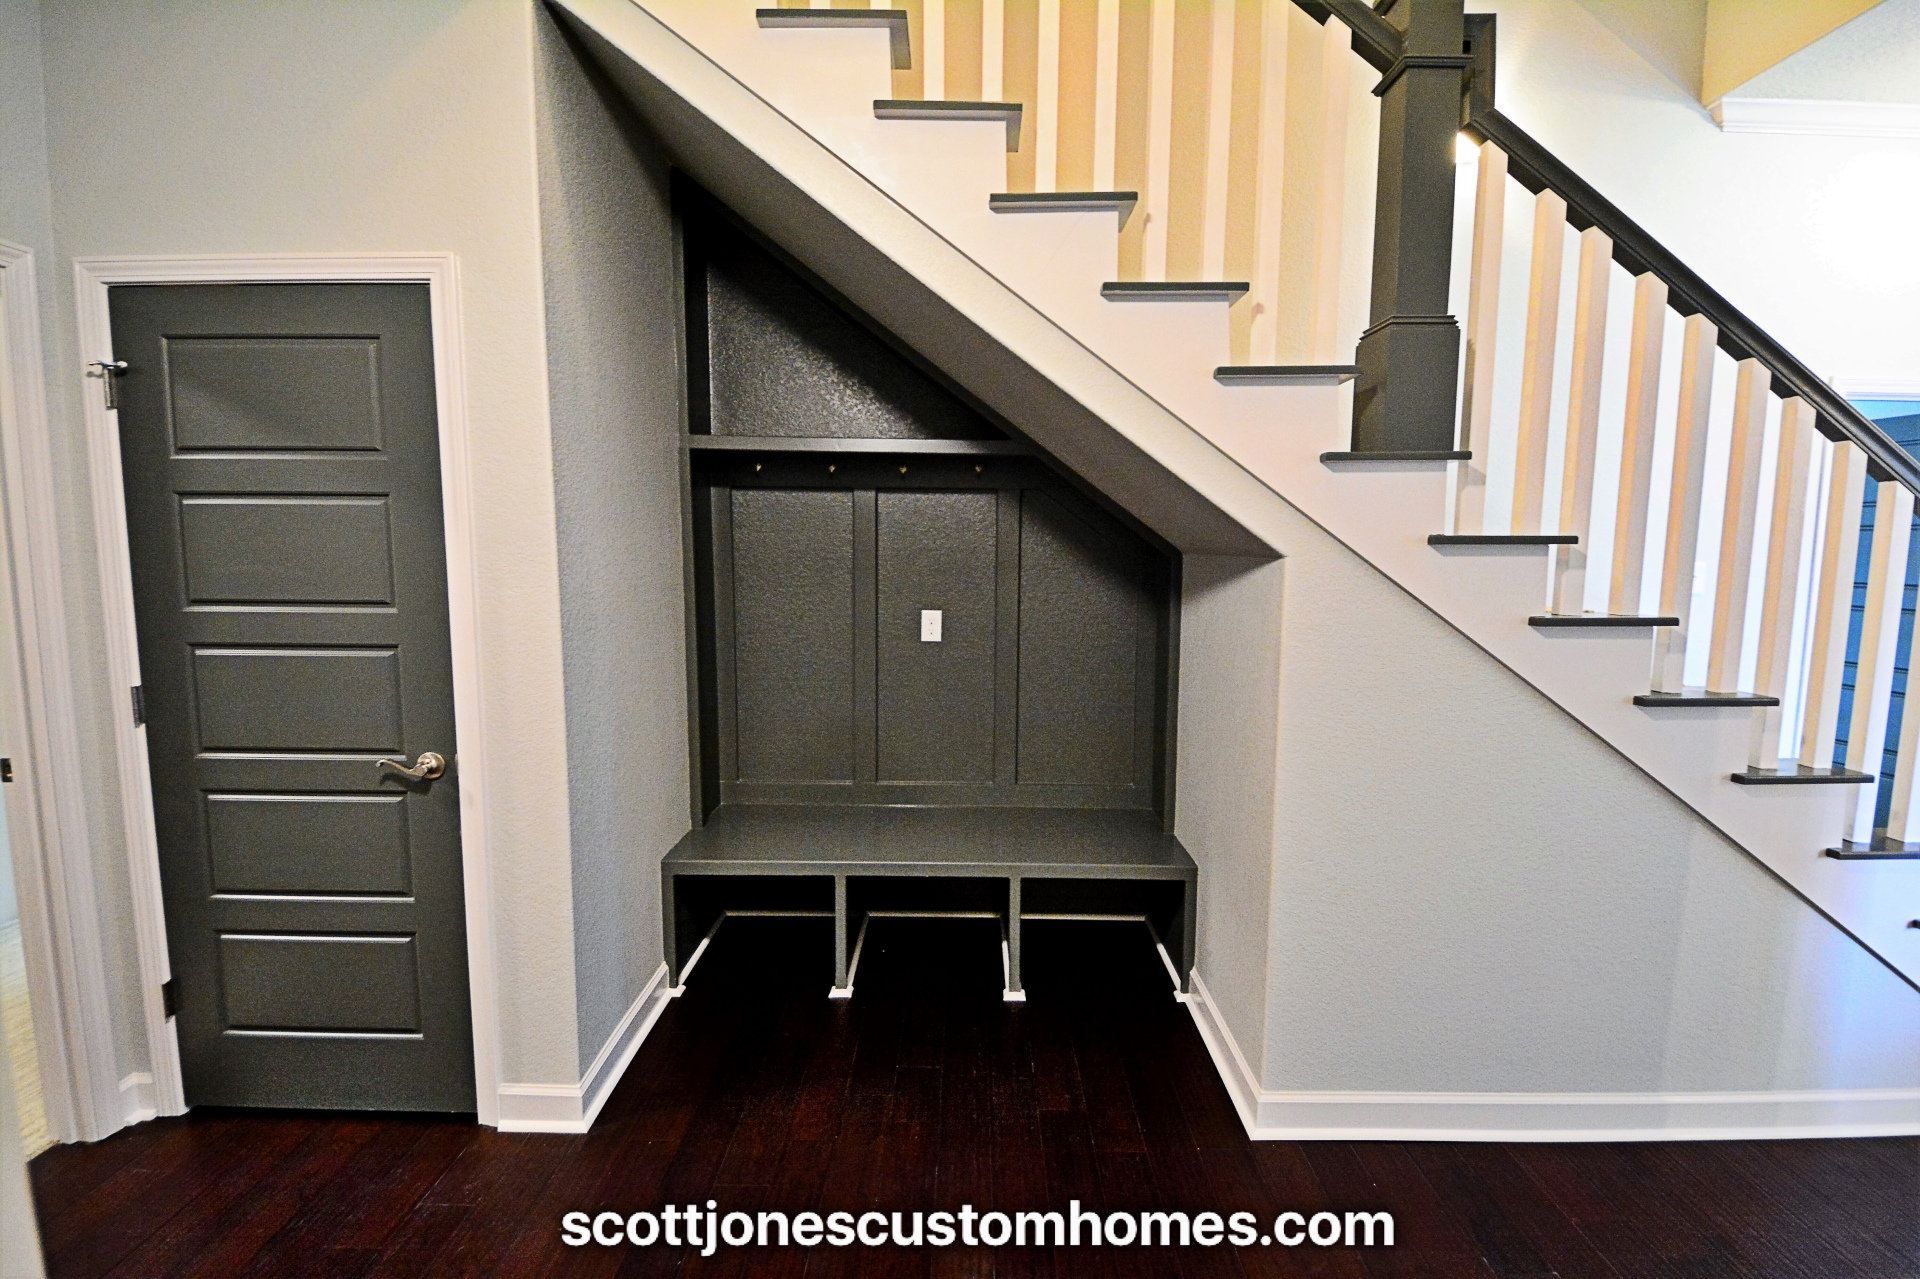 Maelstrom Home Hallway, Mudroom with Bench and Cubbies